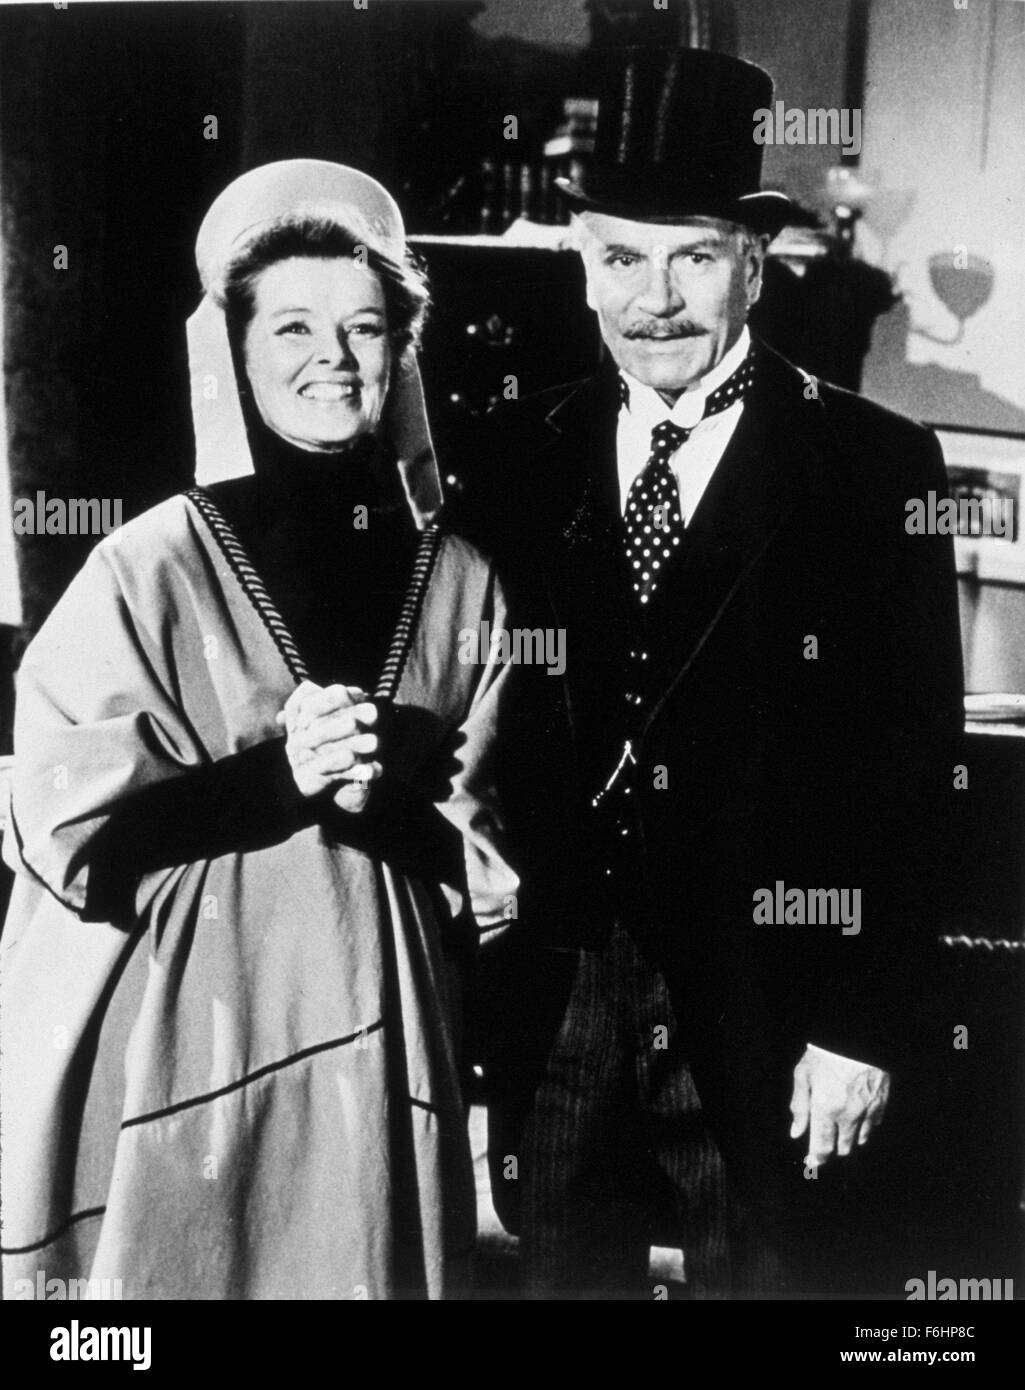 1975, Film Title: LOVE AMONG THE RUINS, Director: GEORGE CUKOR, Pictured: HANDS CLASPED, KATHARINE HEPBURN, LAURENCE - Stock Image